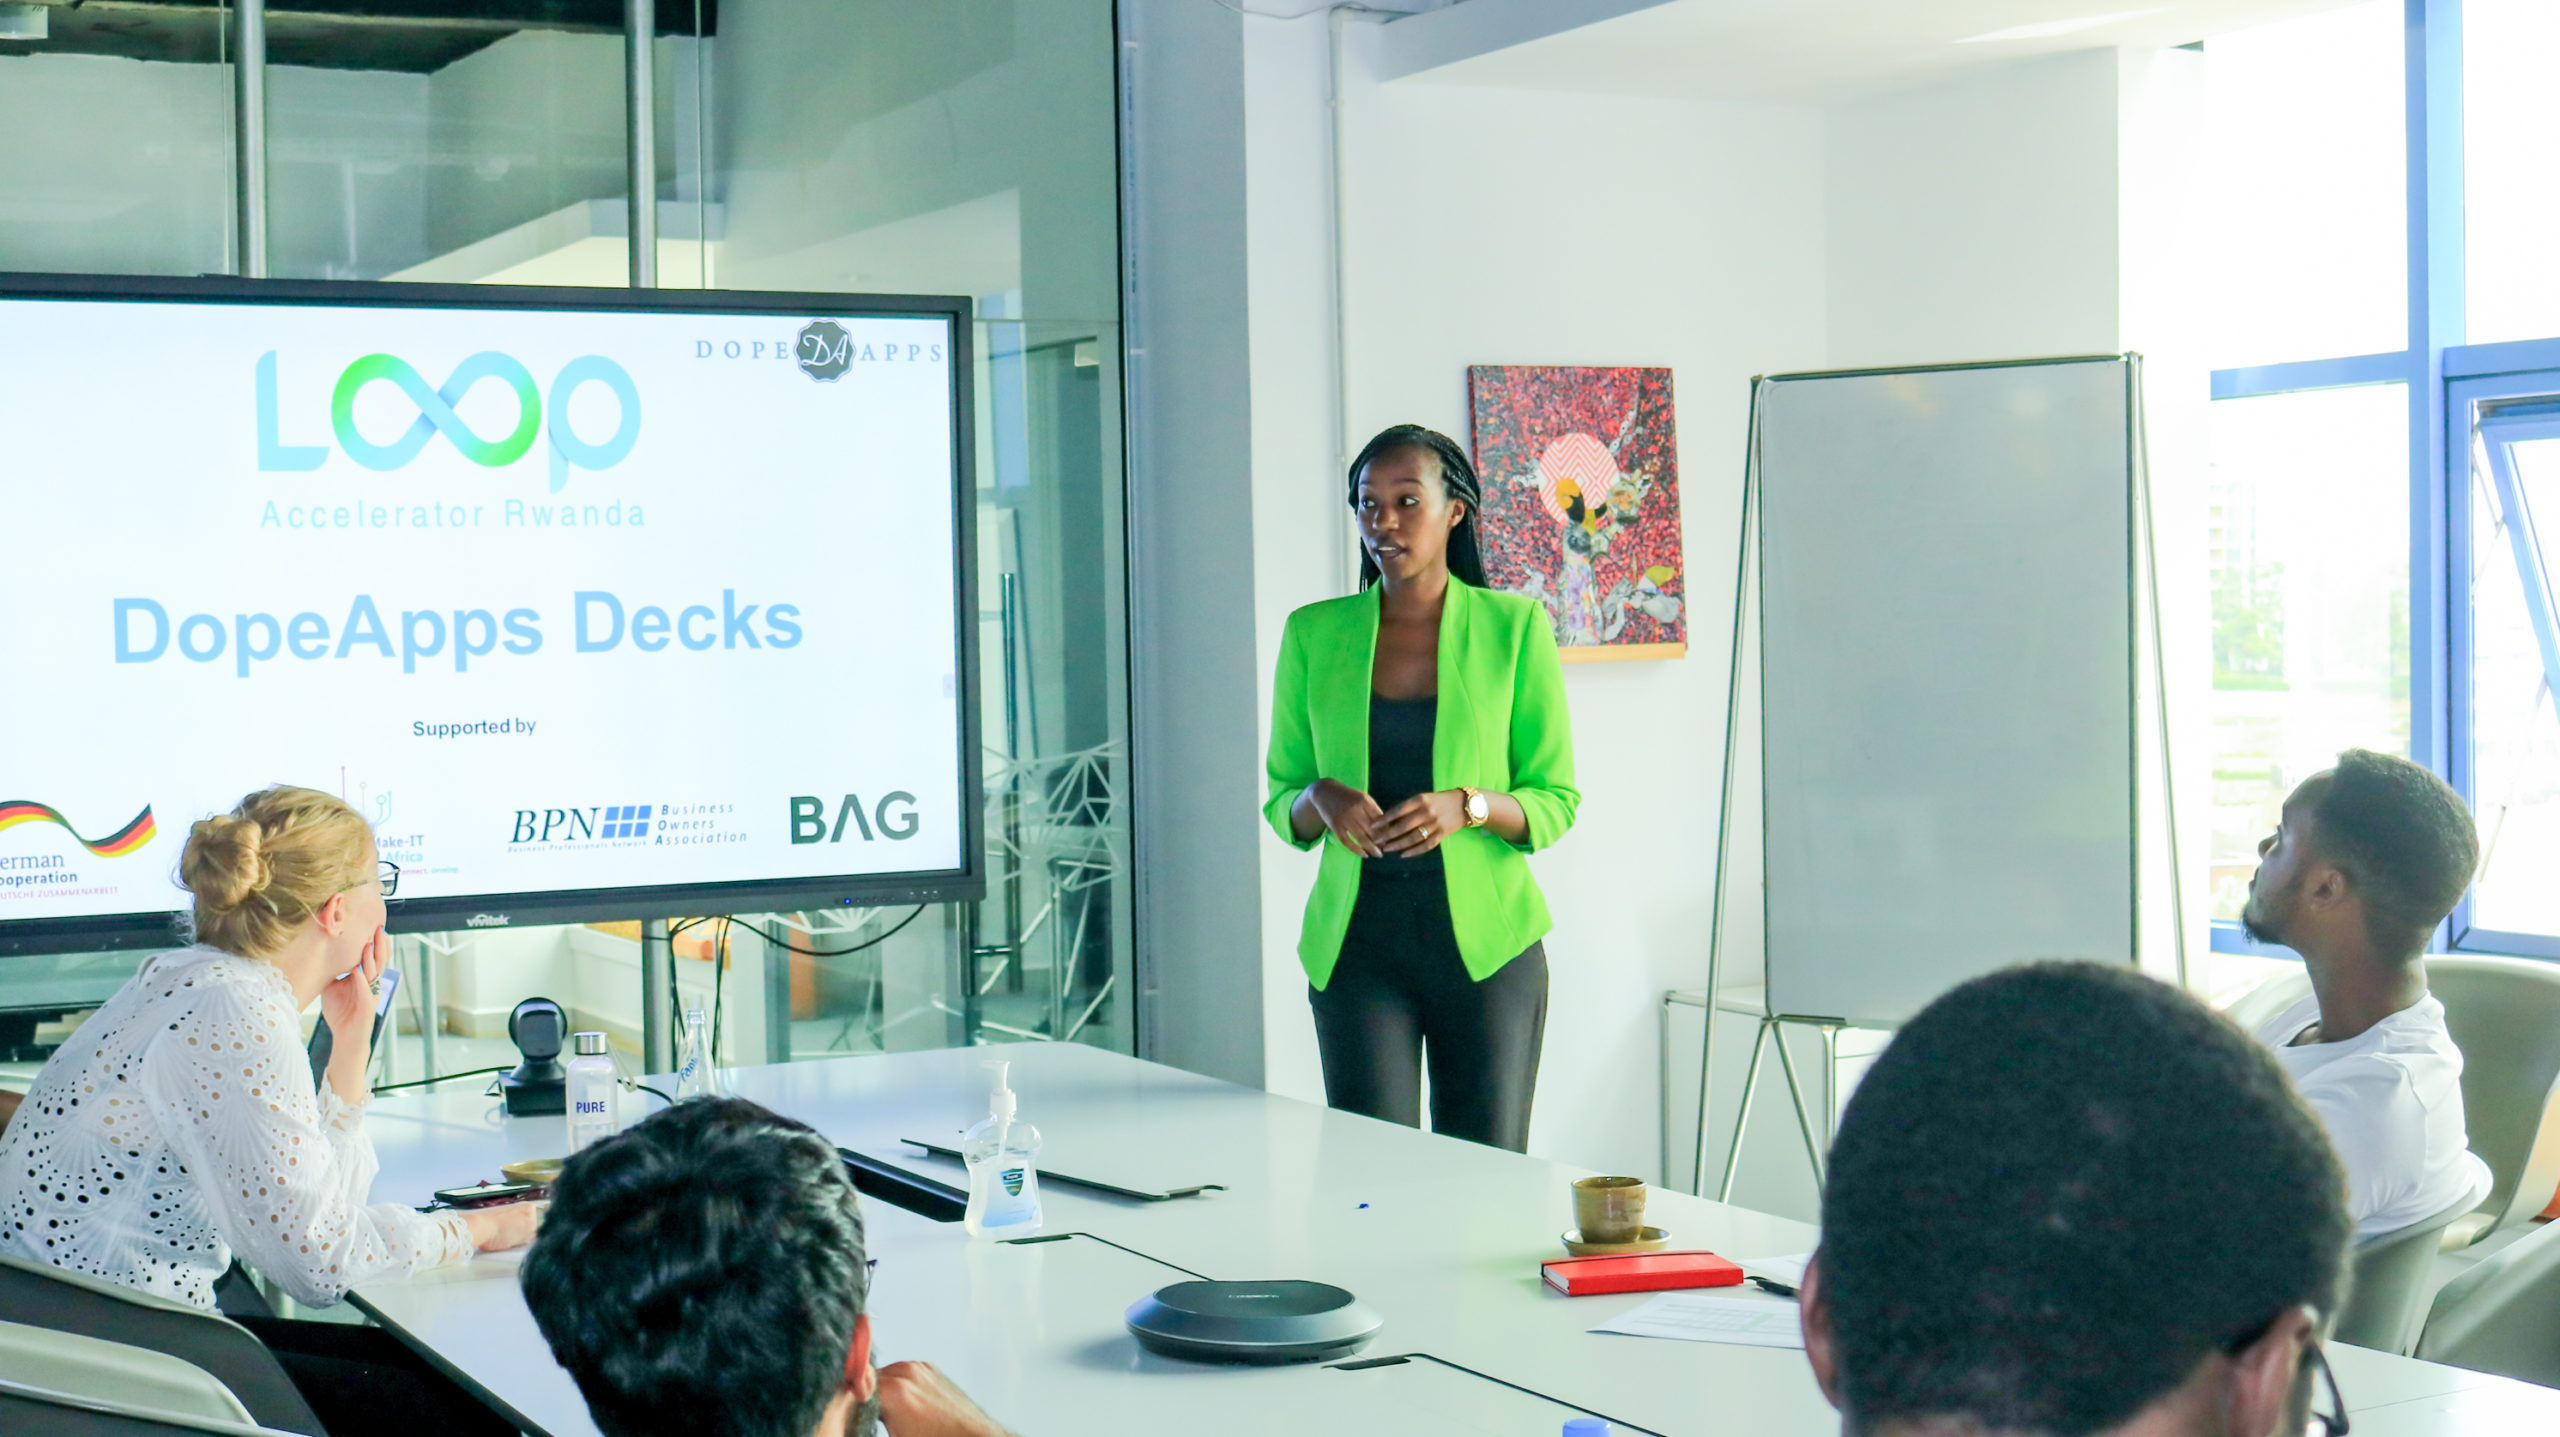 Startups presenting their products and services at the Loop Accelerator in Kigali Rwanda